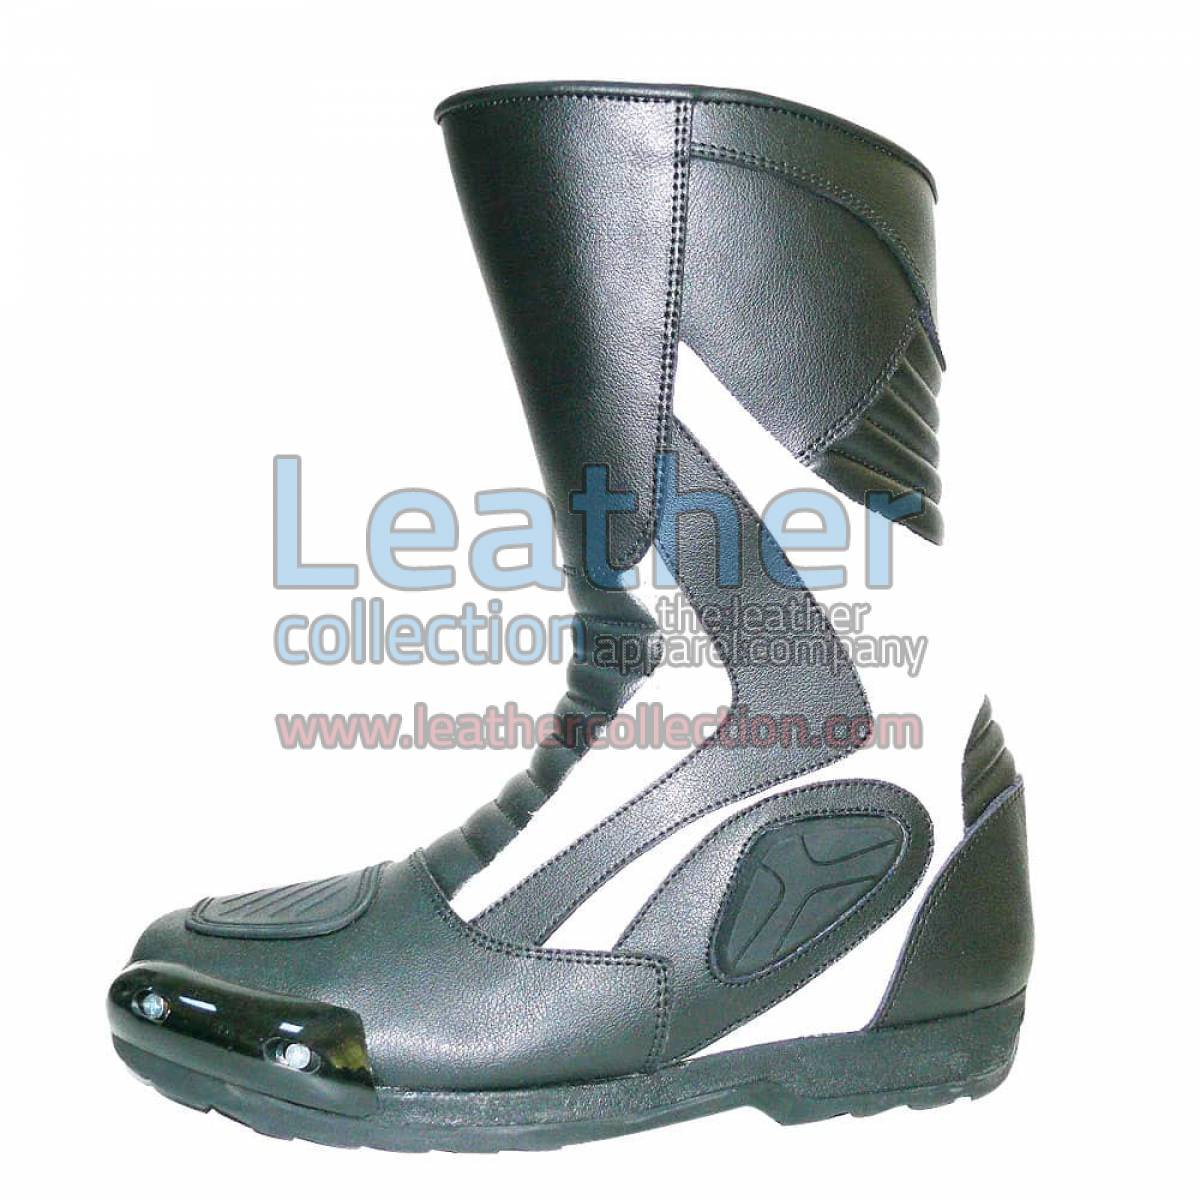 Heritage White Leather Racing Boots